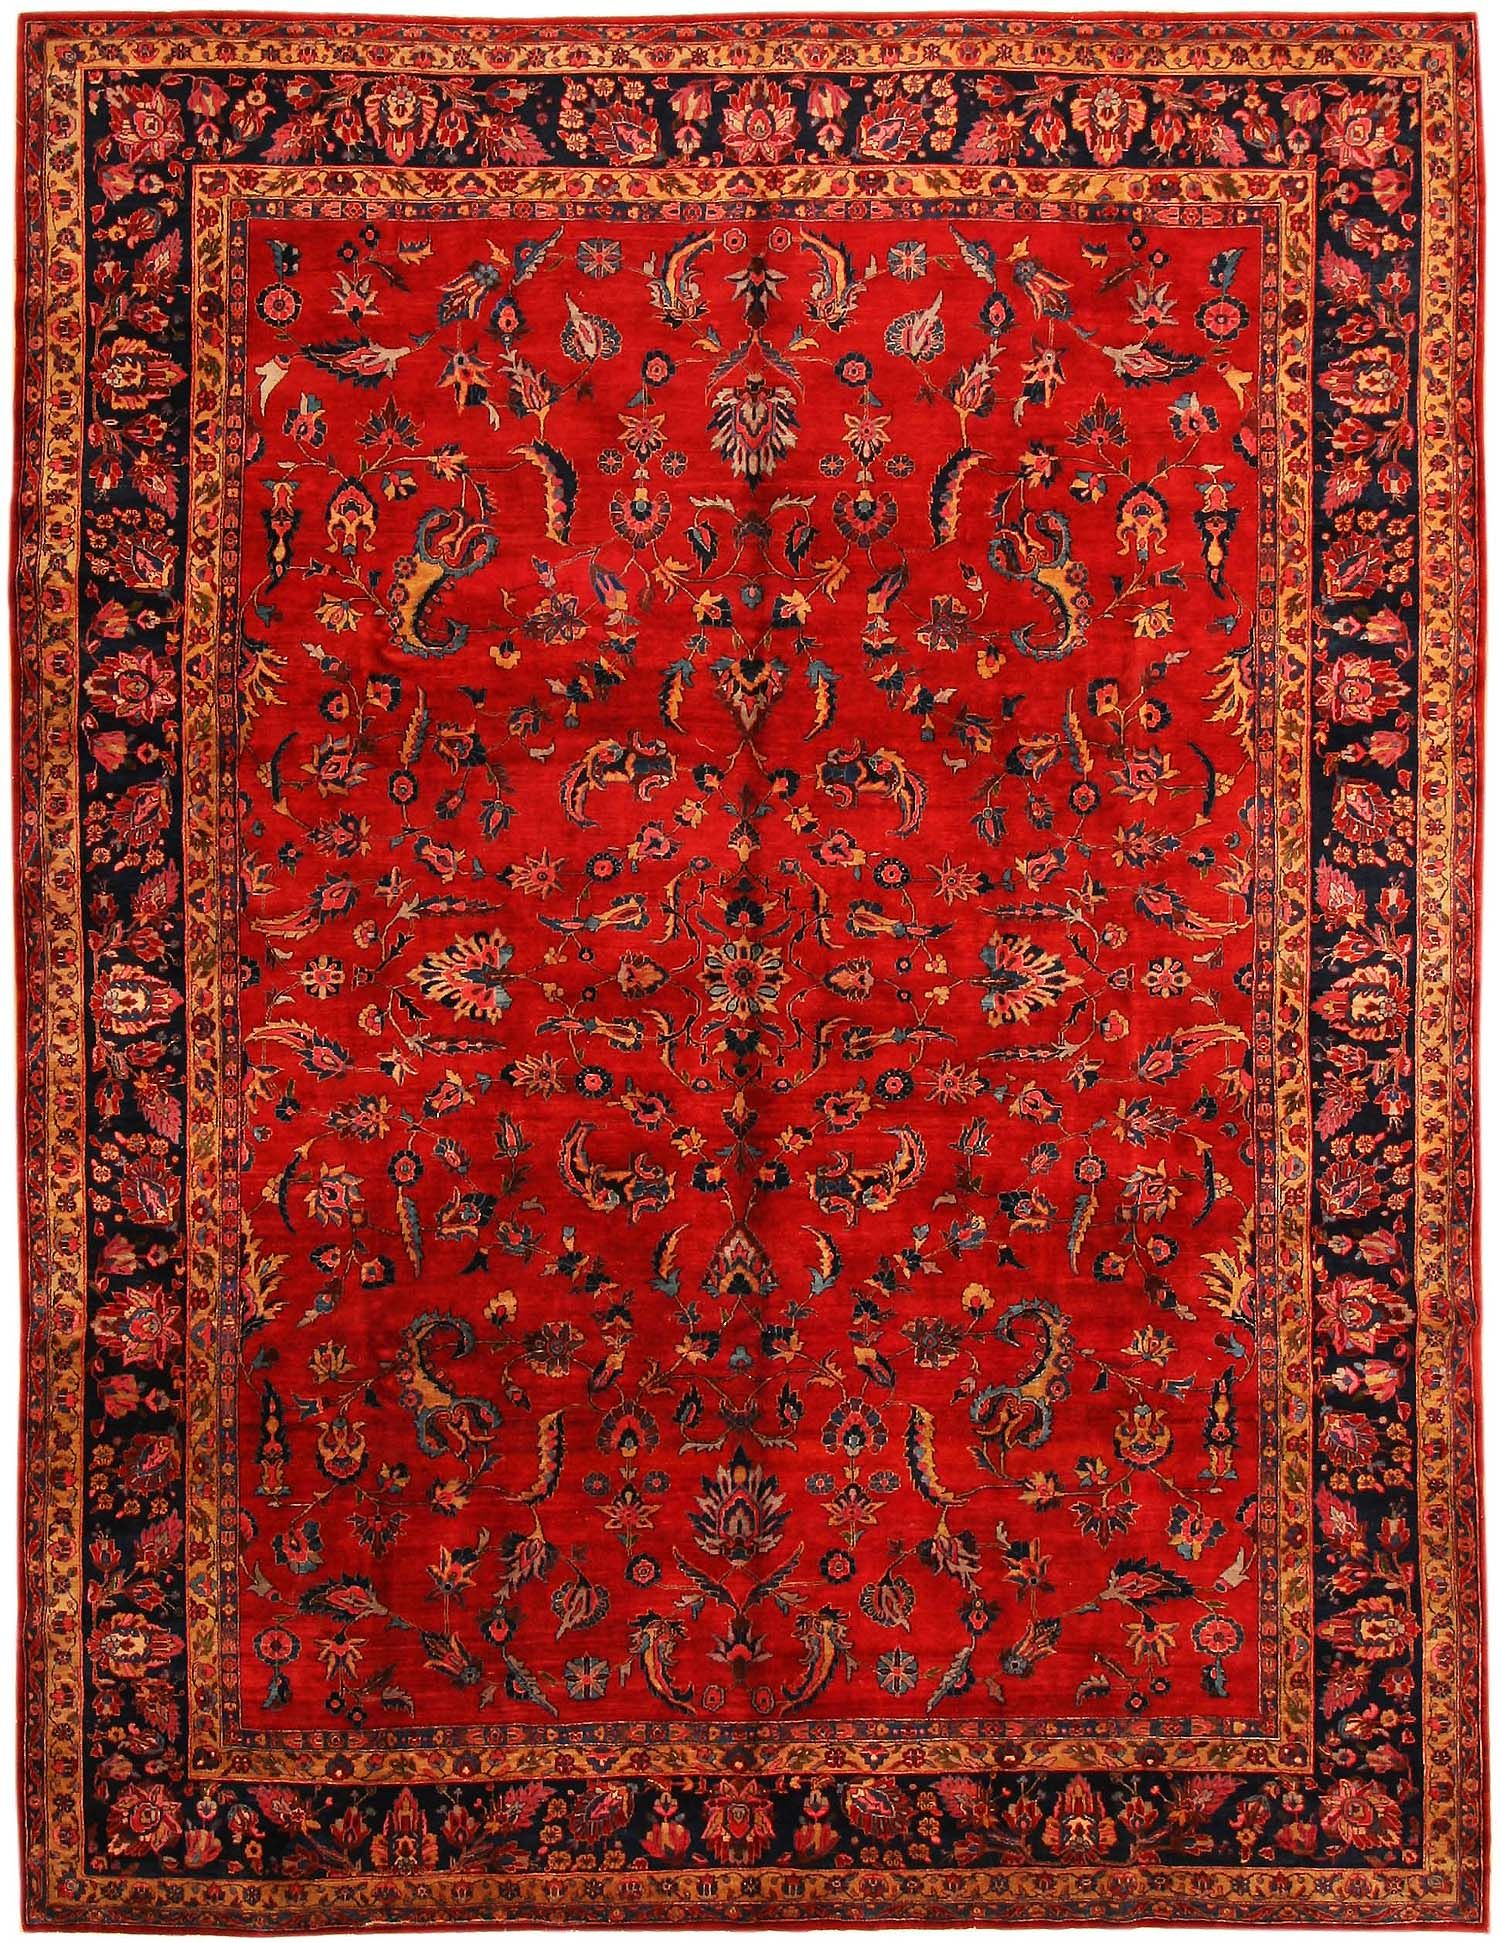 Antique Sarouk Persian Rug 43524 Home Decor Area Rugs